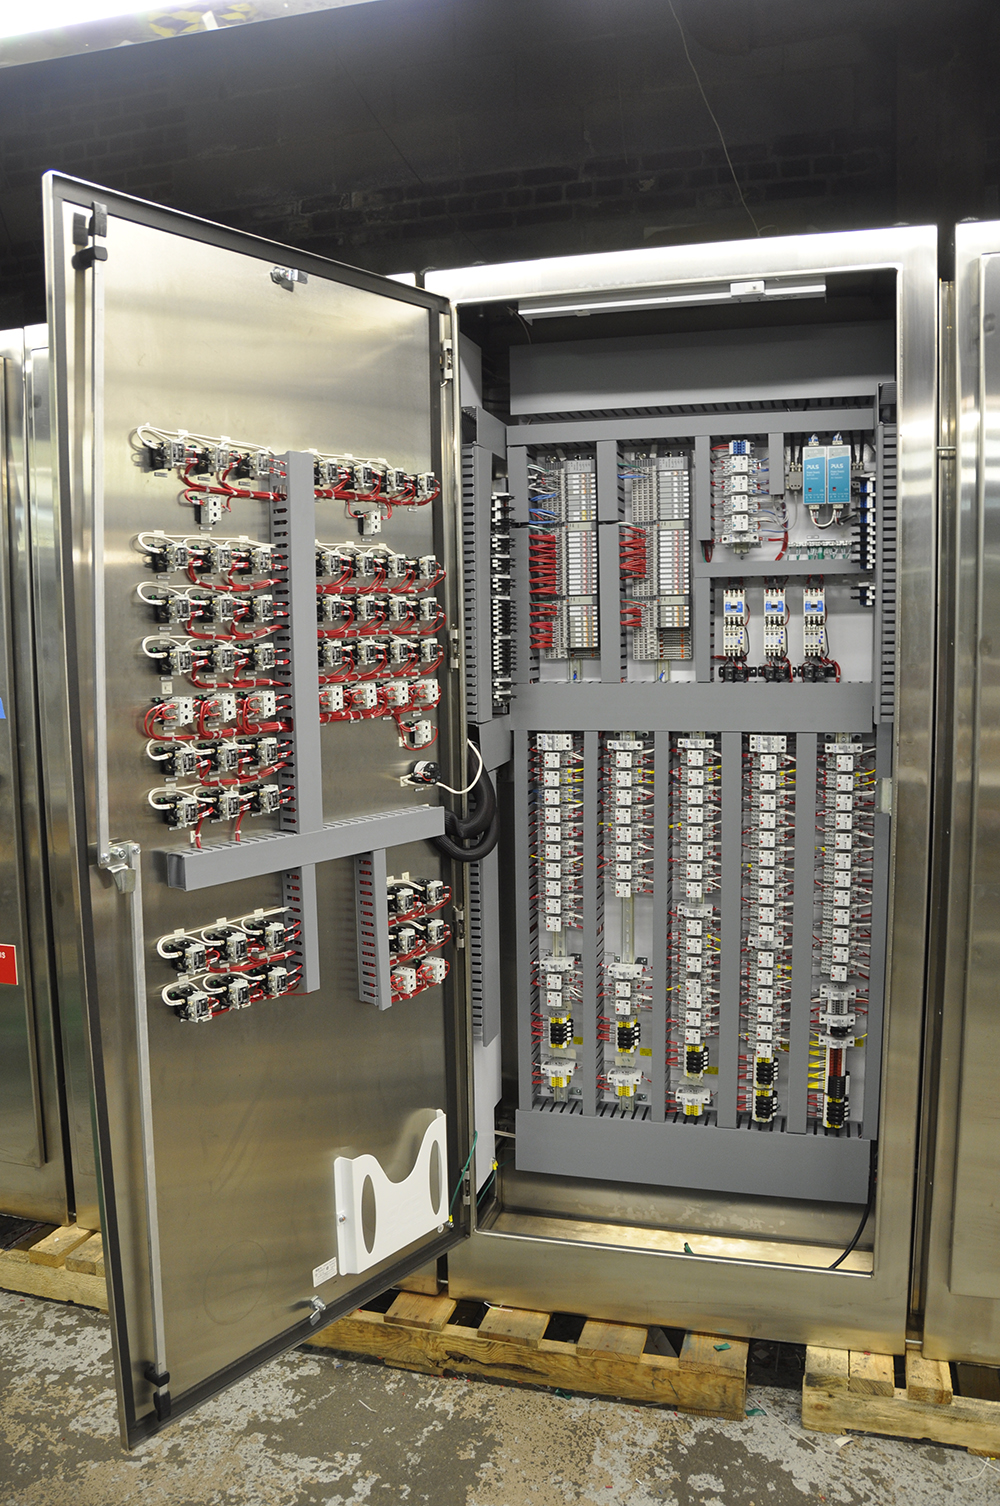 Plc Panels Full System Integration Electrical Control